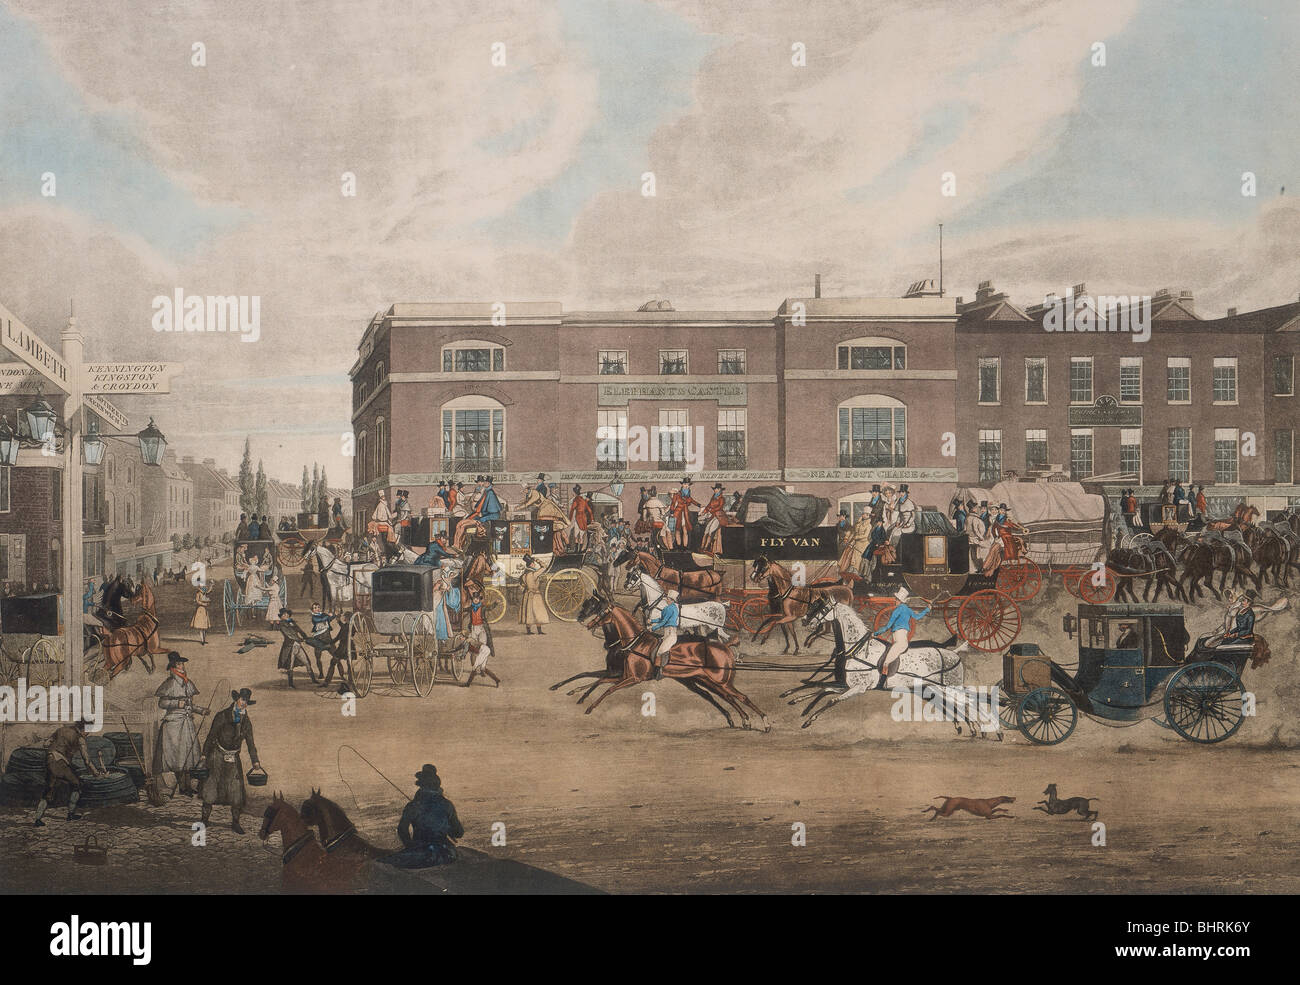 Coaches at the Elephant and Castle, London, first half of the 19th century. Artist: Theodore Henry Adolphus Fielding - Stock Image